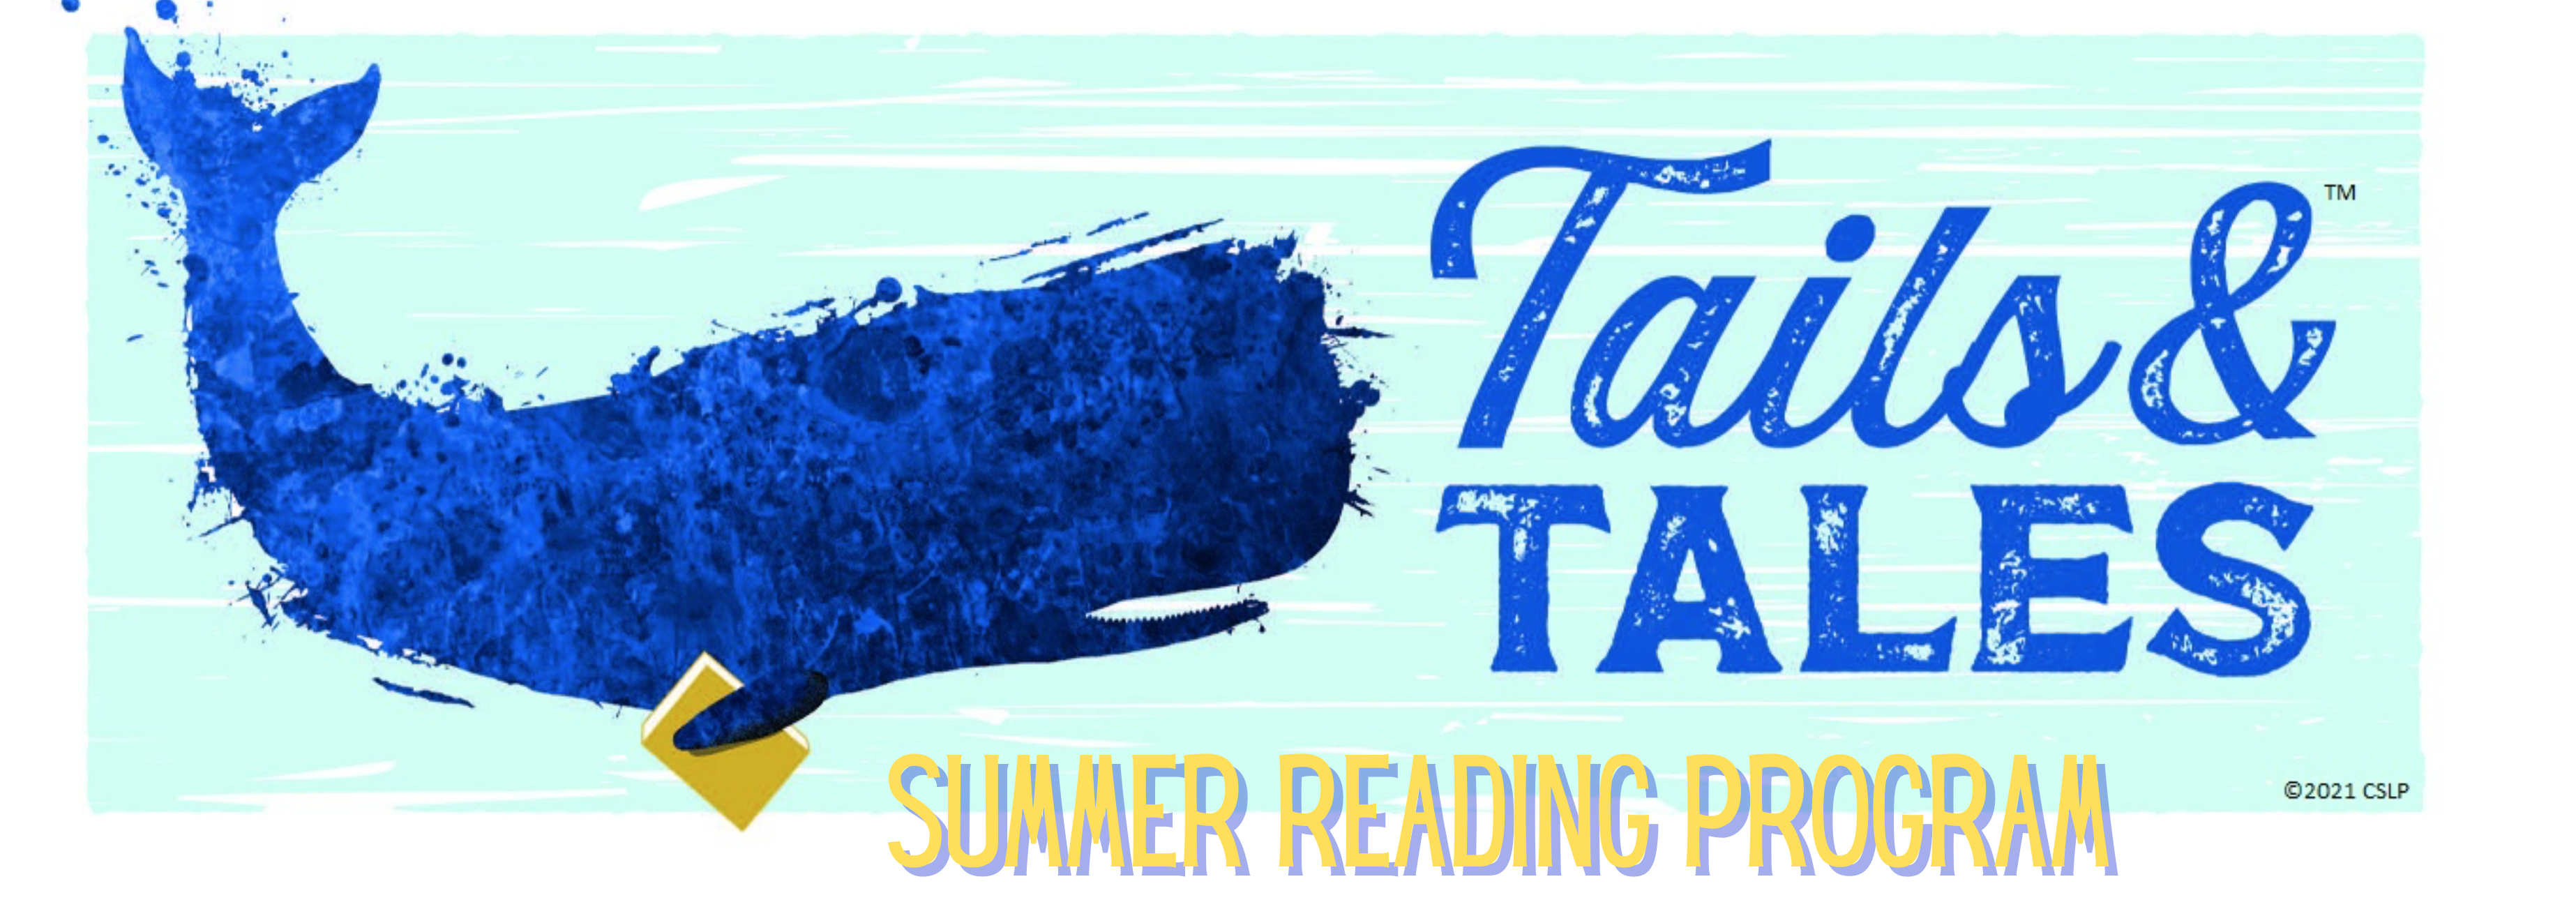 In illustration of a navy blue whale swimming in light blue water and holding a yellow book. There is a white border and blue and yellow lettering of varying typefaces.